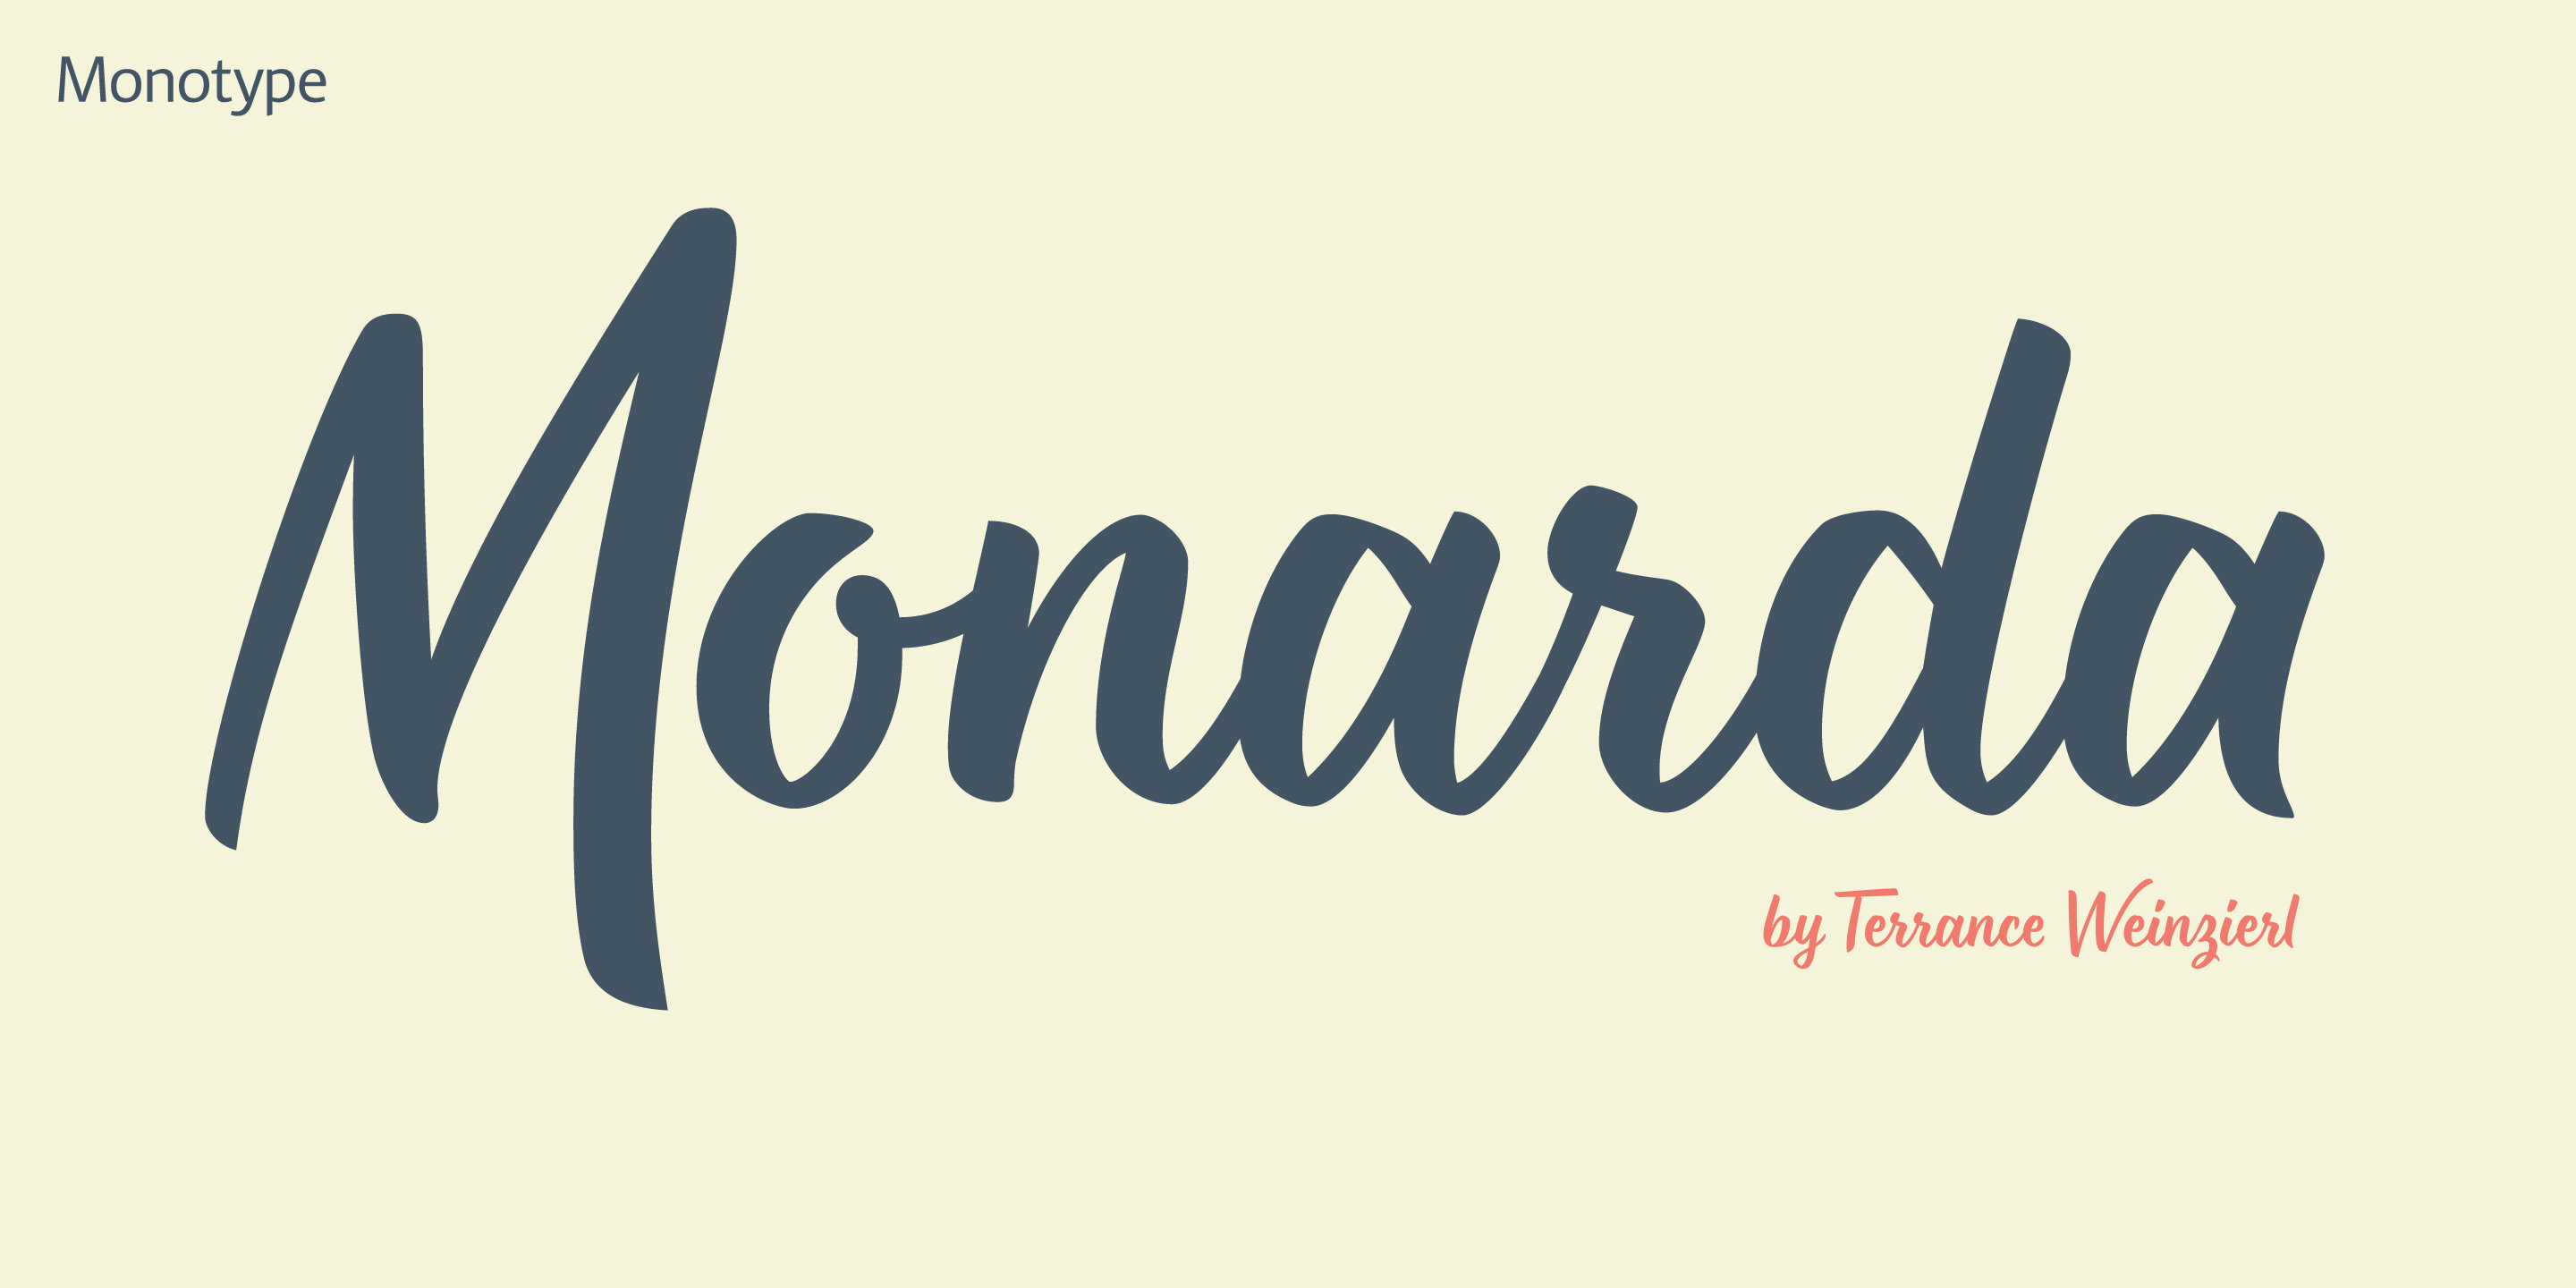 Monotype Adds New Typefaces to Its Library